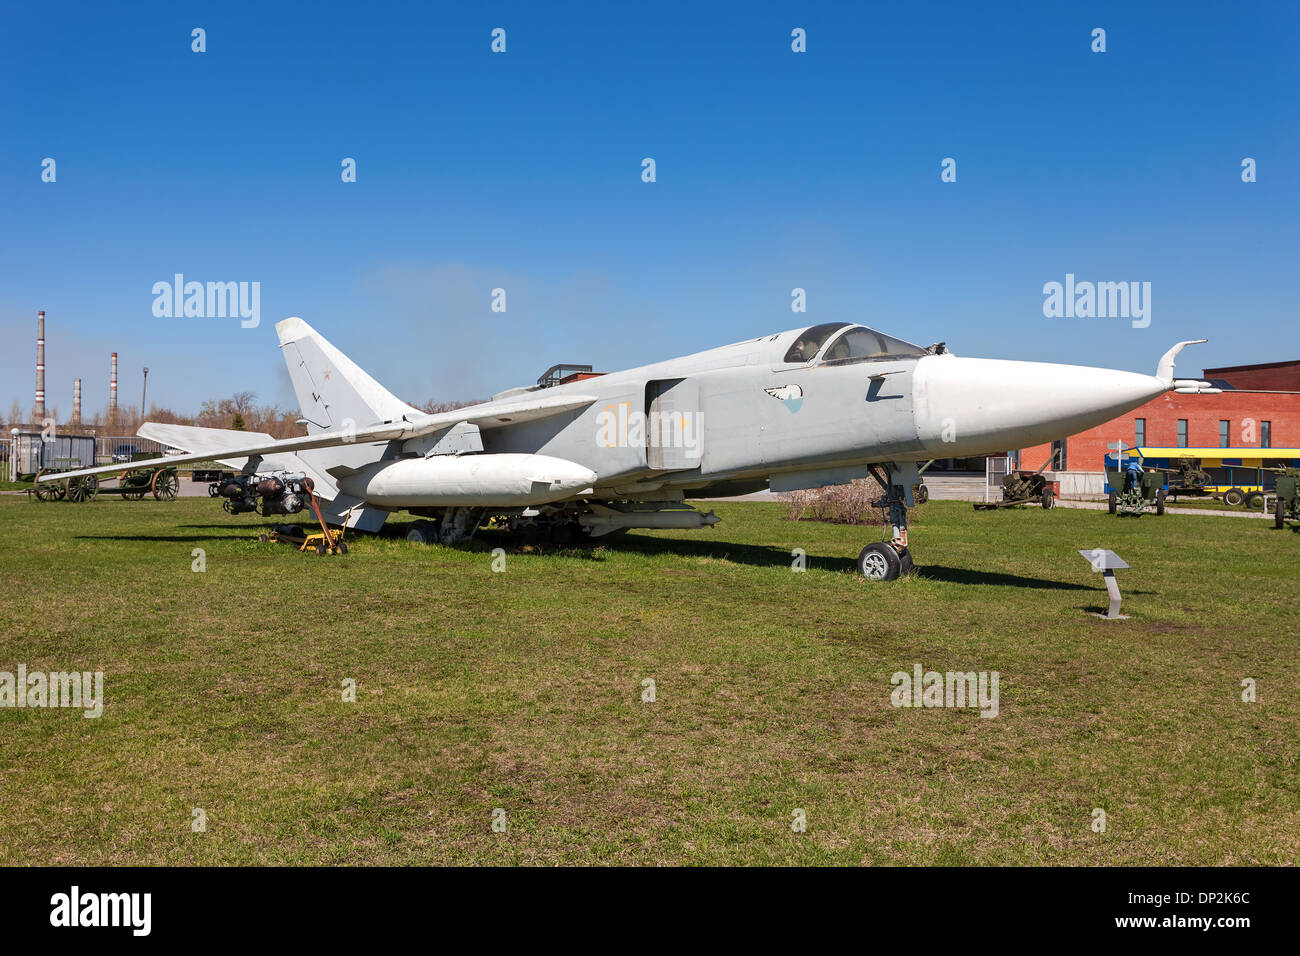 The Sukhoi Su-24 'Fencer' supersonic, all-weather attack aircraft - Stock Image